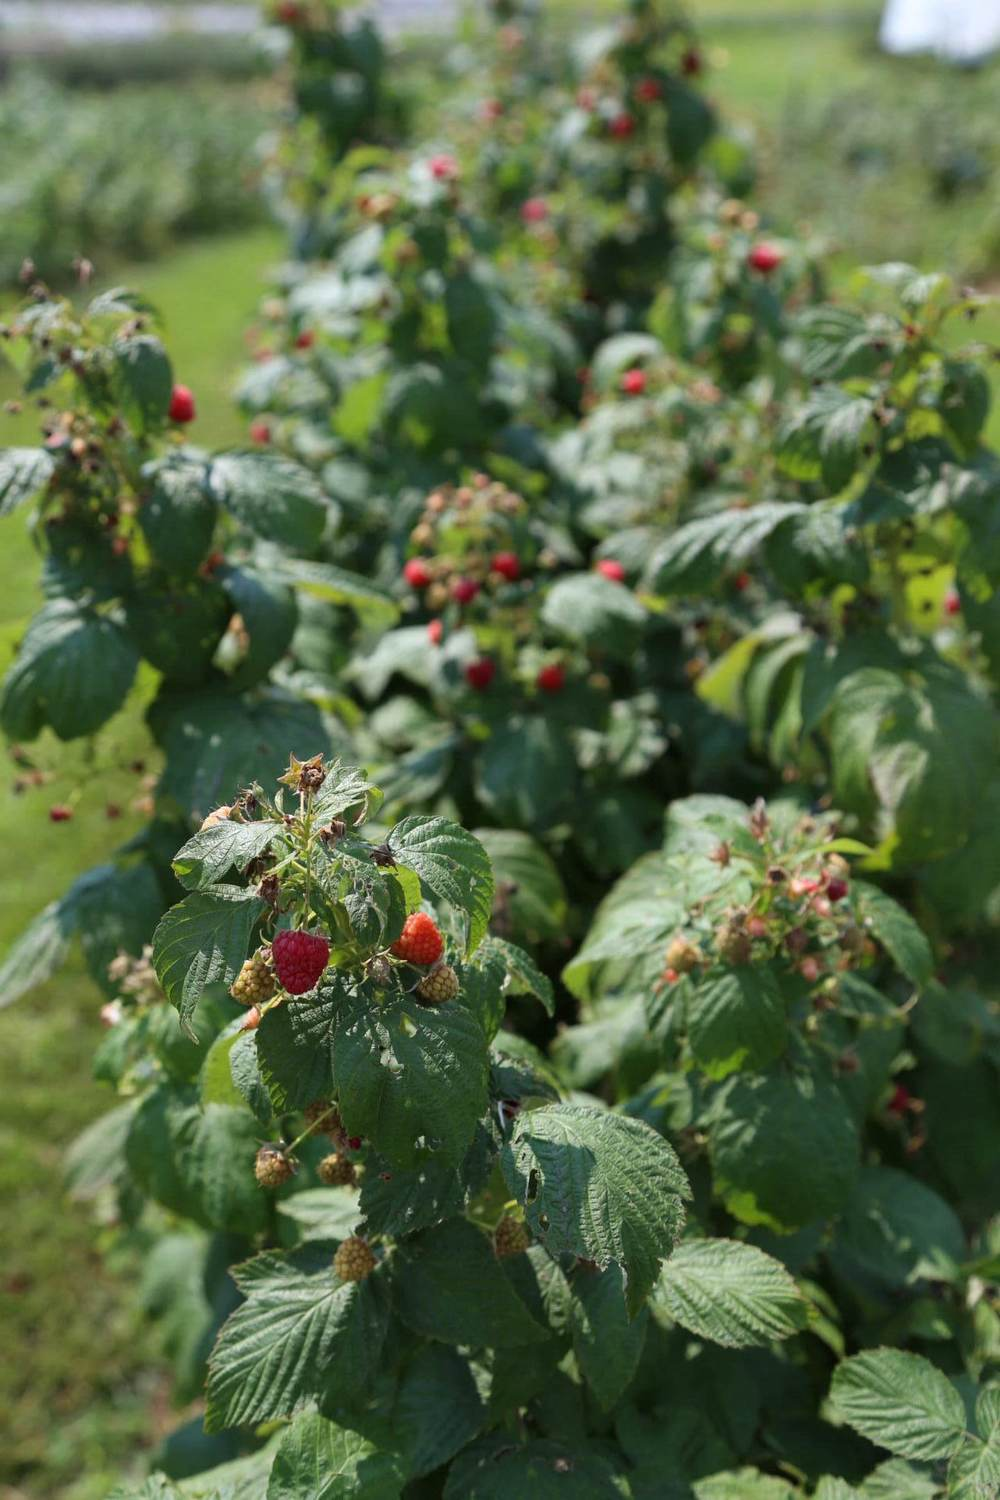 Fall-bearing (everbearing) raspberries ready for the picking